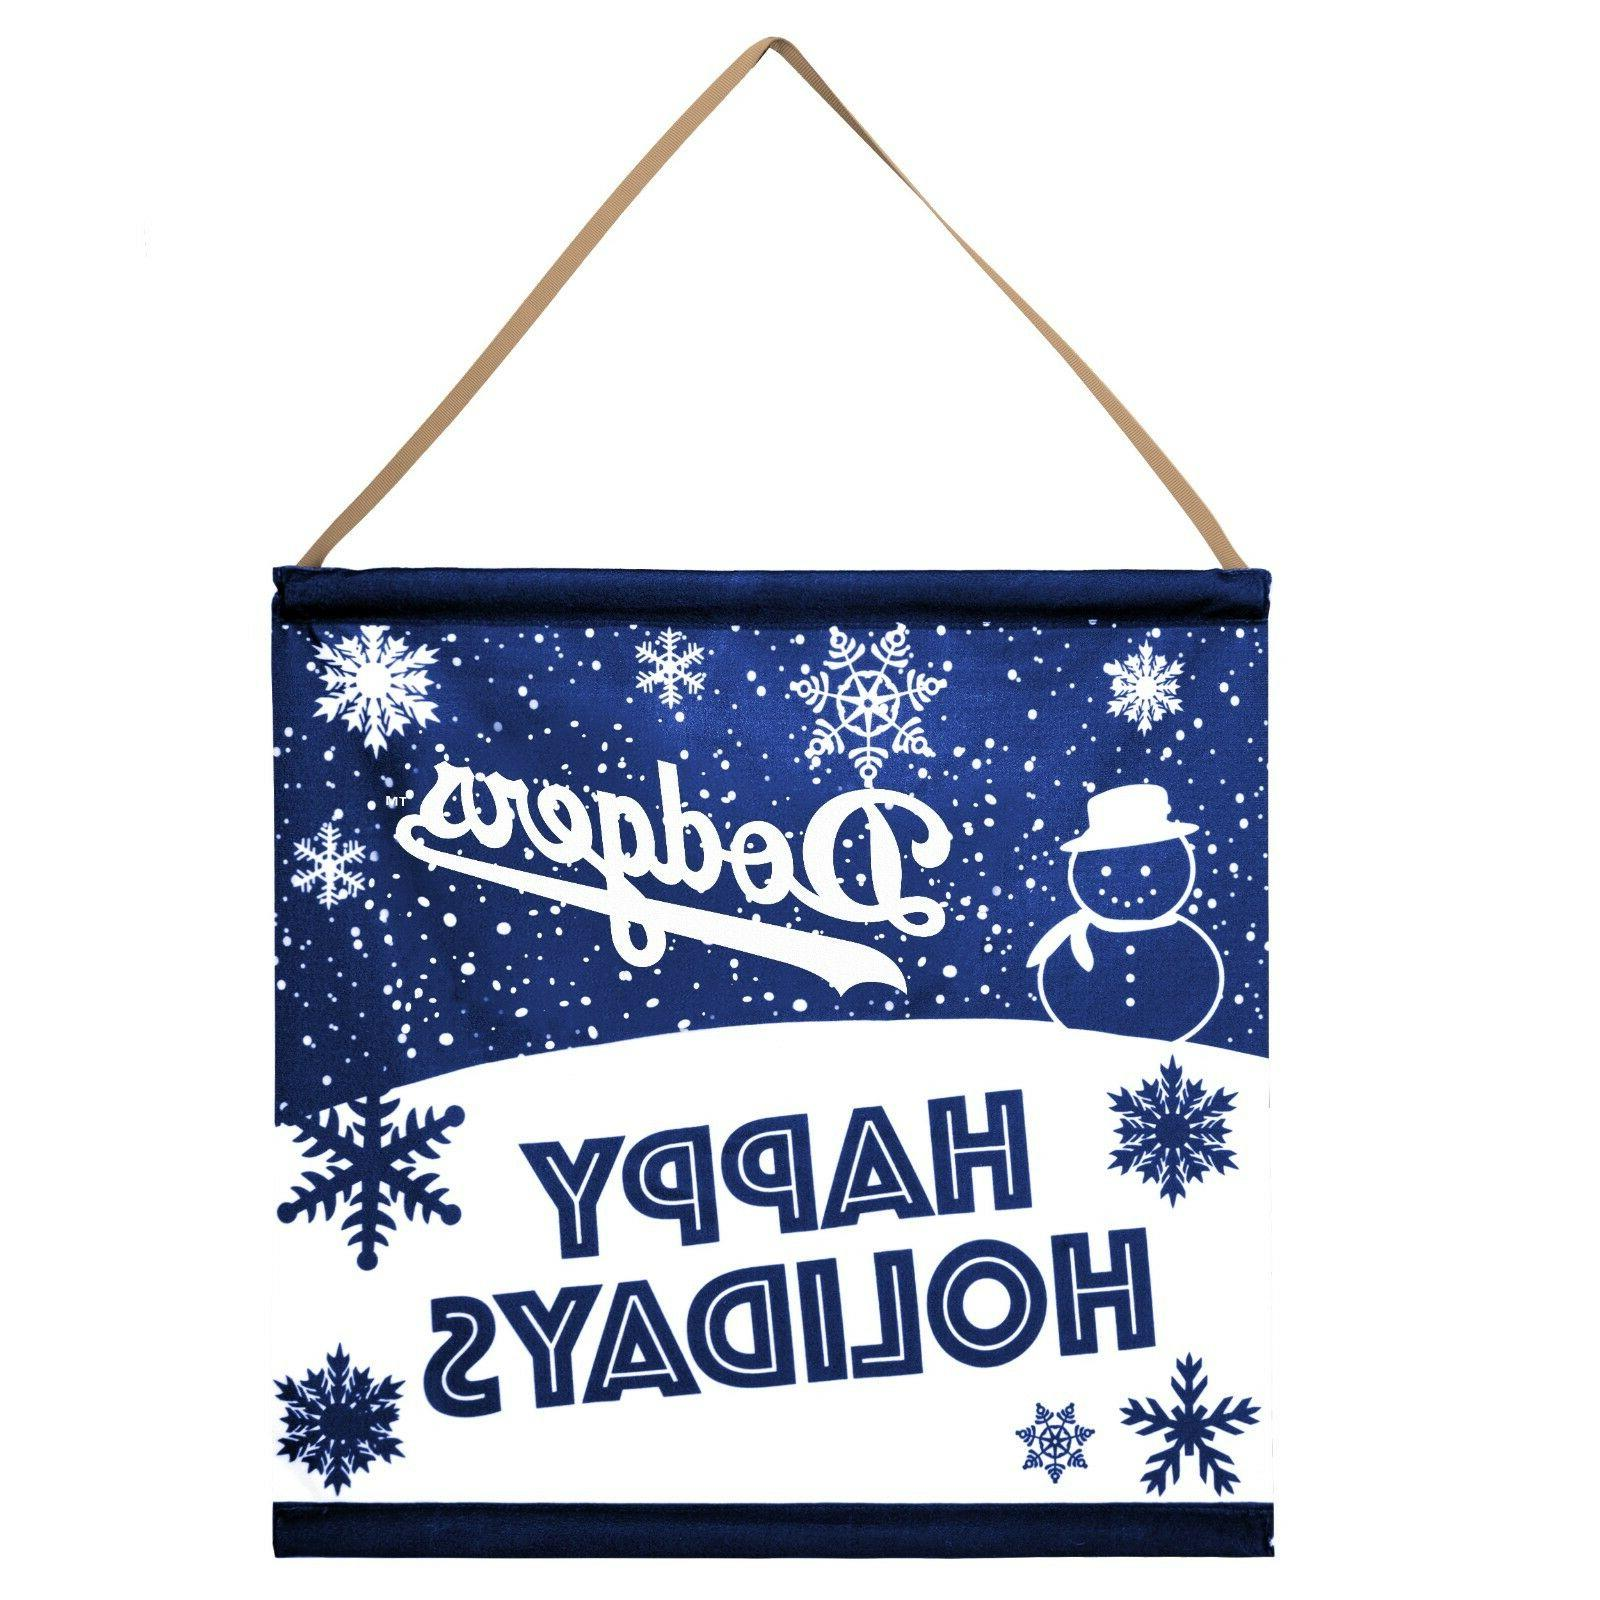 los angeles dodgers happy holidays banner sign